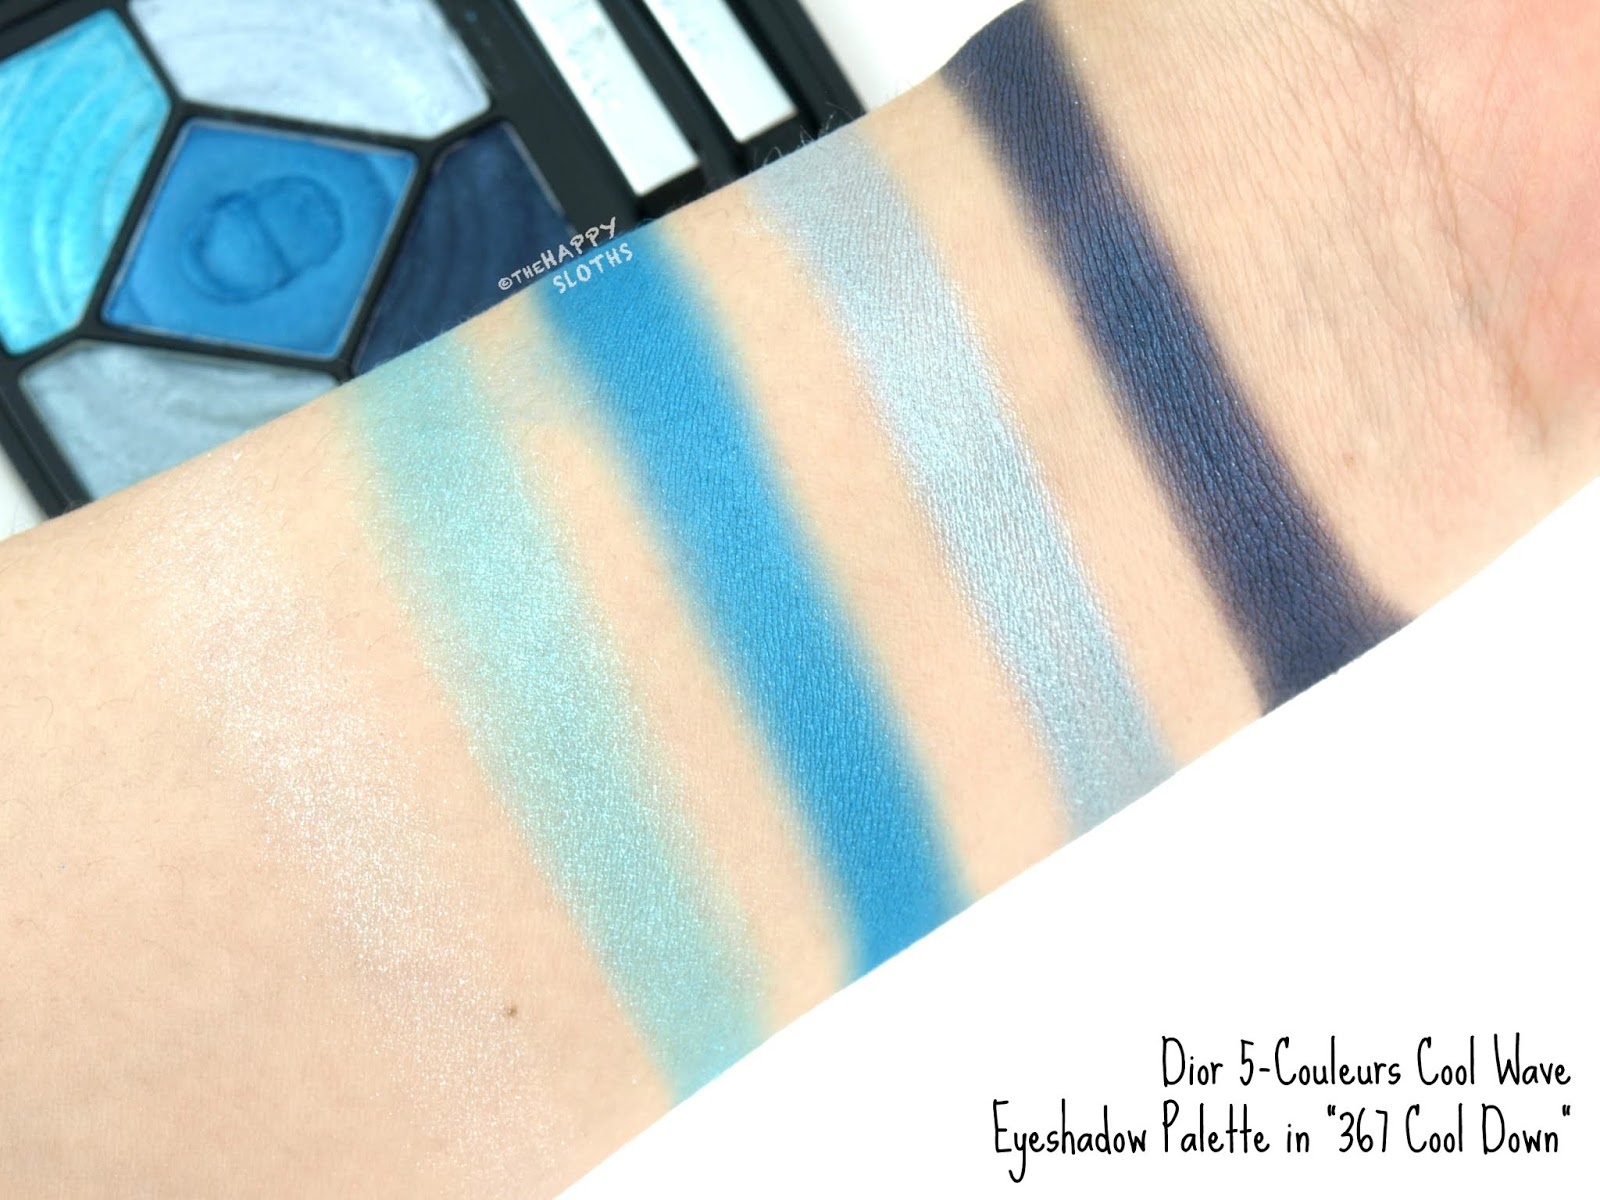 "Dior | Summer 2018 Cool Wave 5-Couleurs Eyeshadow Palette in ""367 Cool Down"": Review and Swatches"